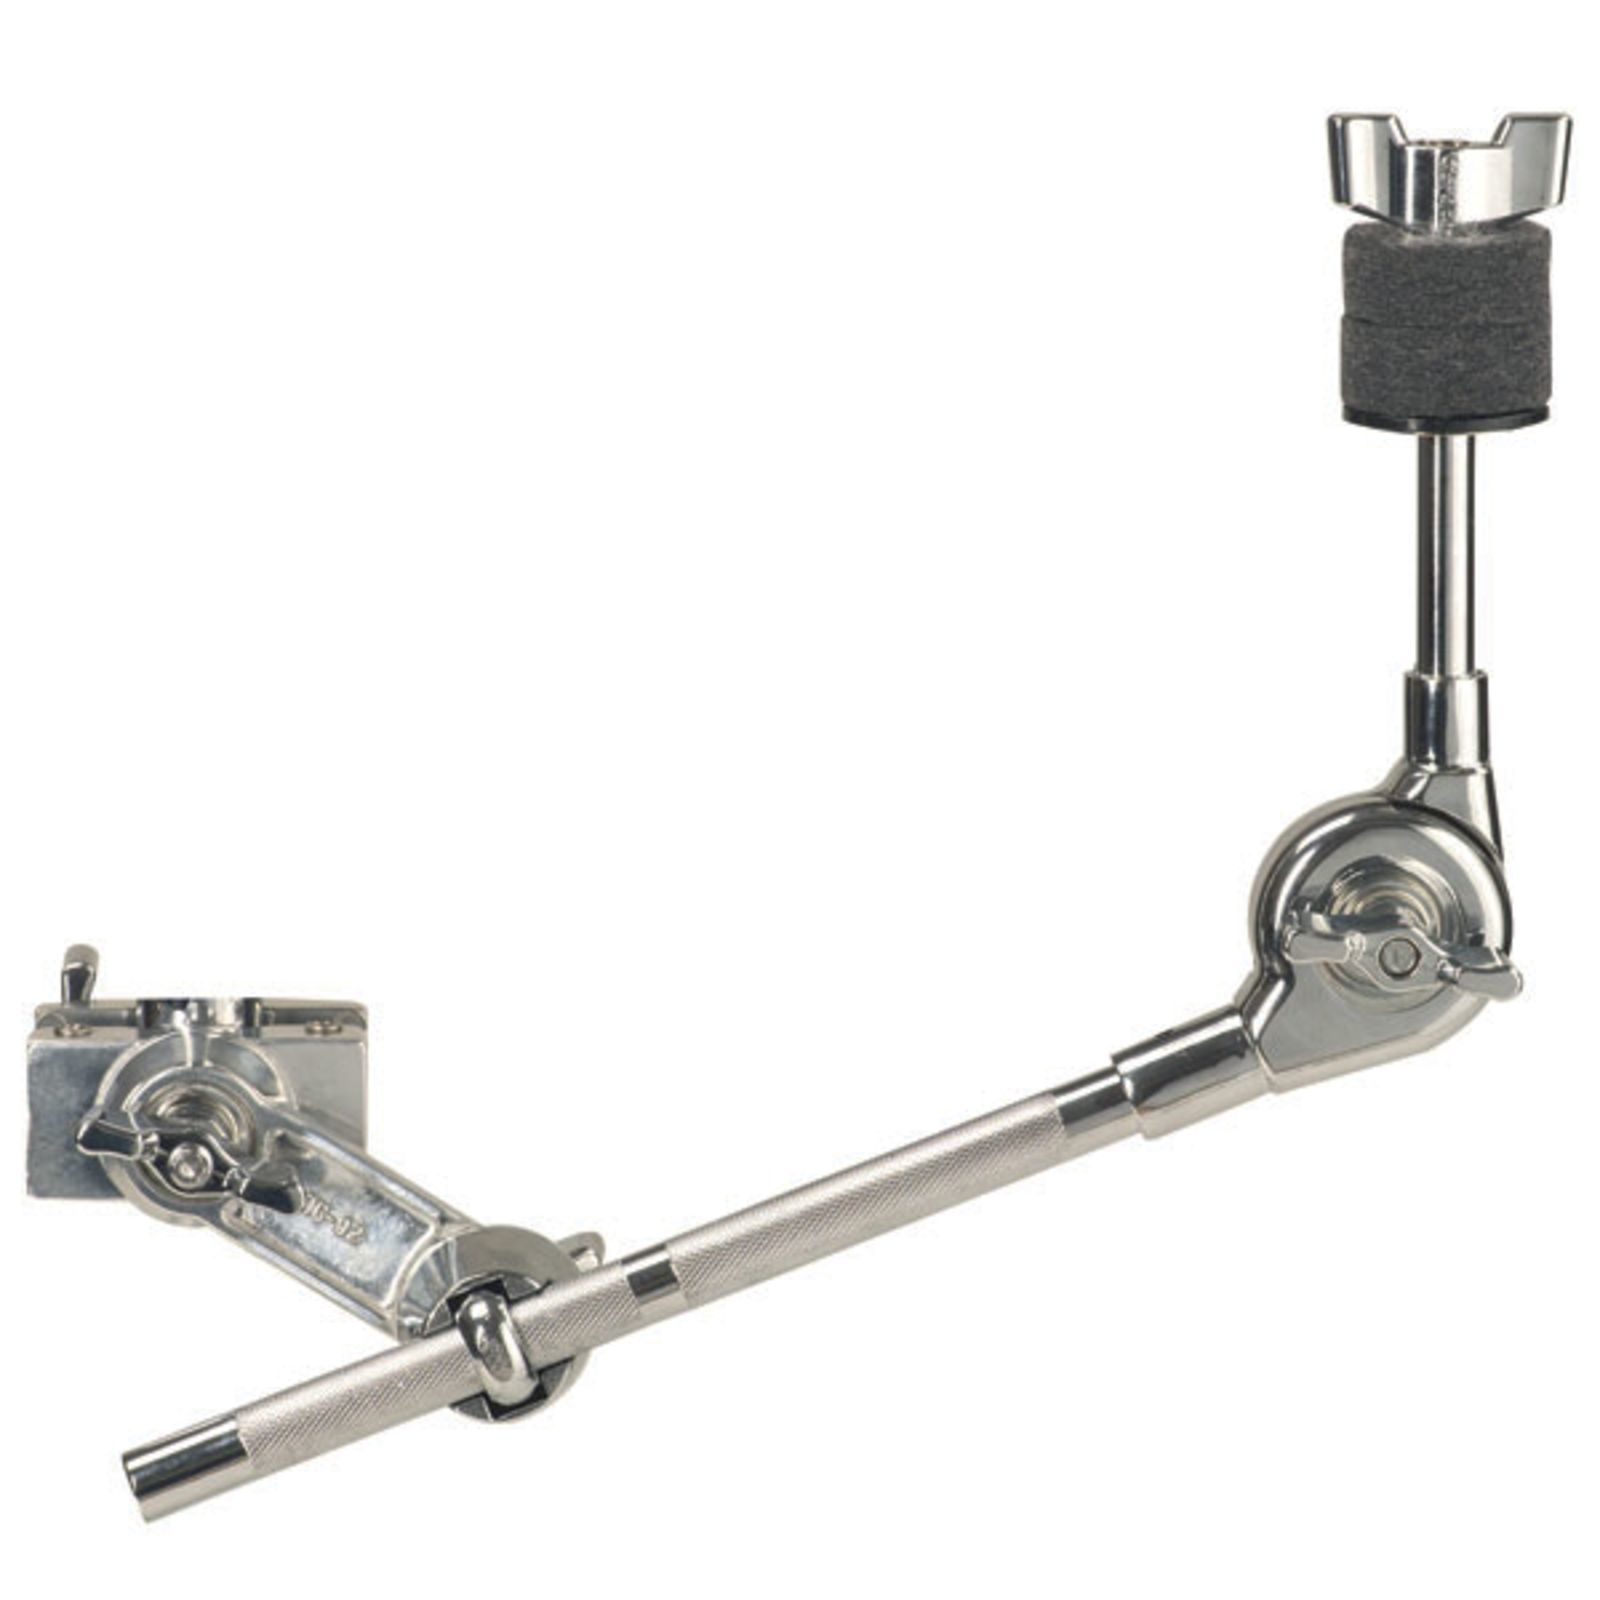 Gibraltar Cymbal Boom Arm SC-CMBAC, incl. clamp Productafbeelding